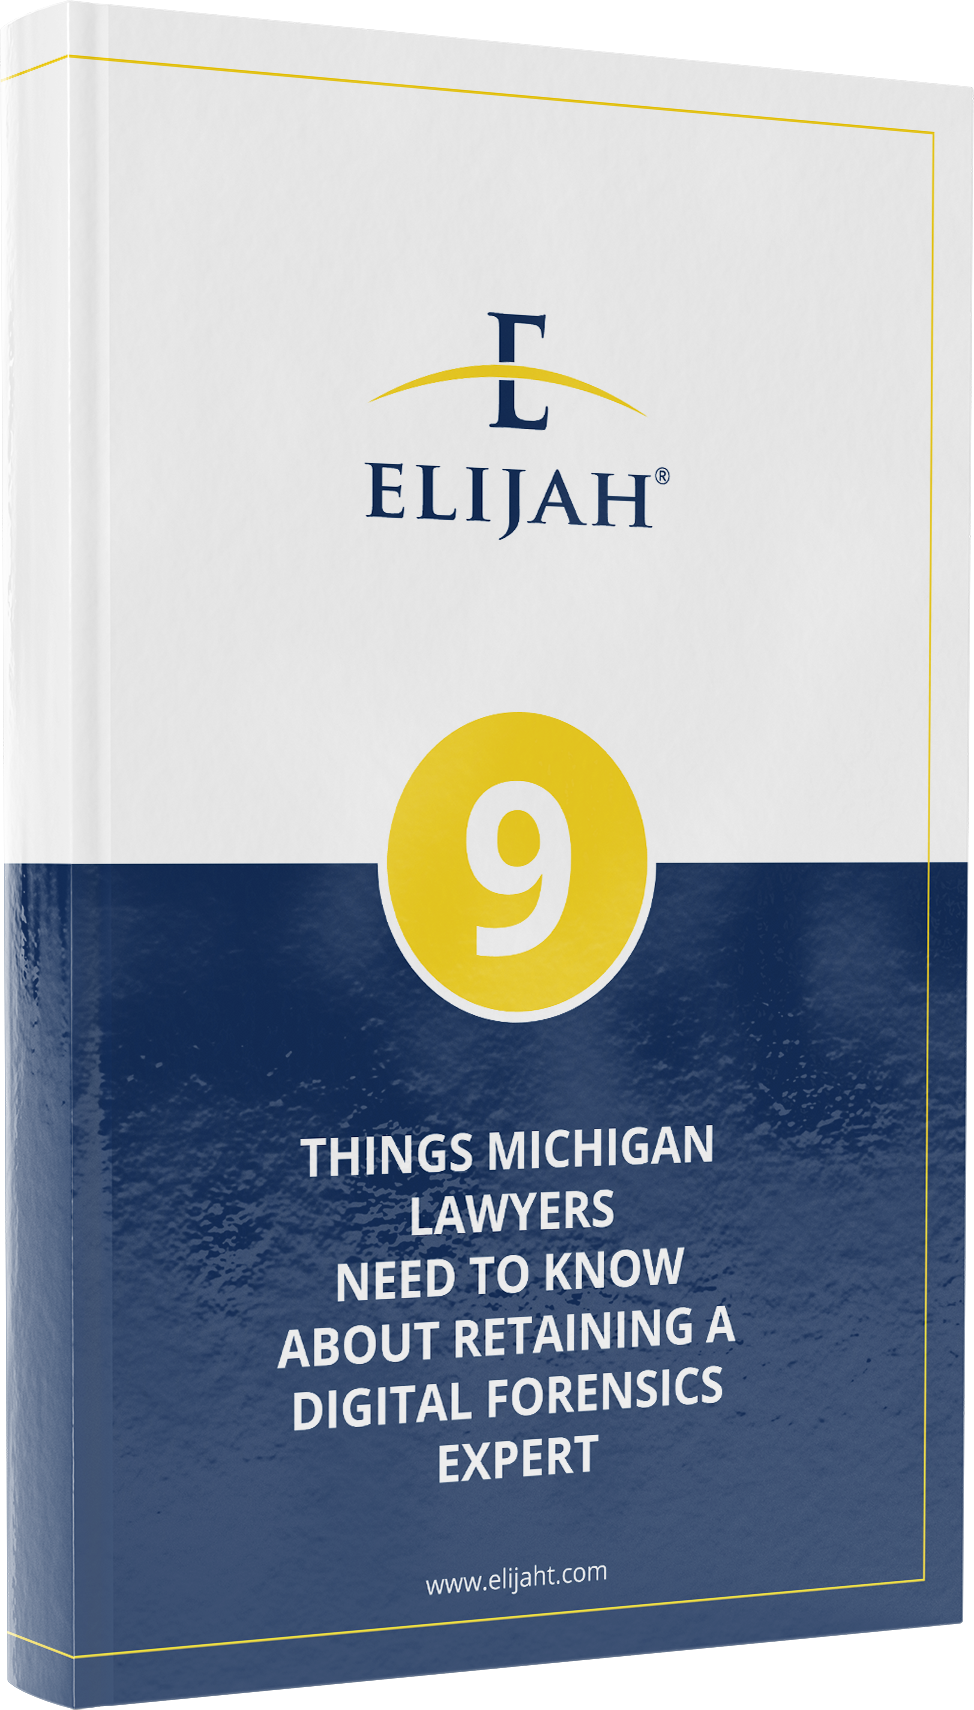 9-Things-Michigan-Lawyers-Need-To-Know-About-Retaining-A-Digital-Forensics-Expert